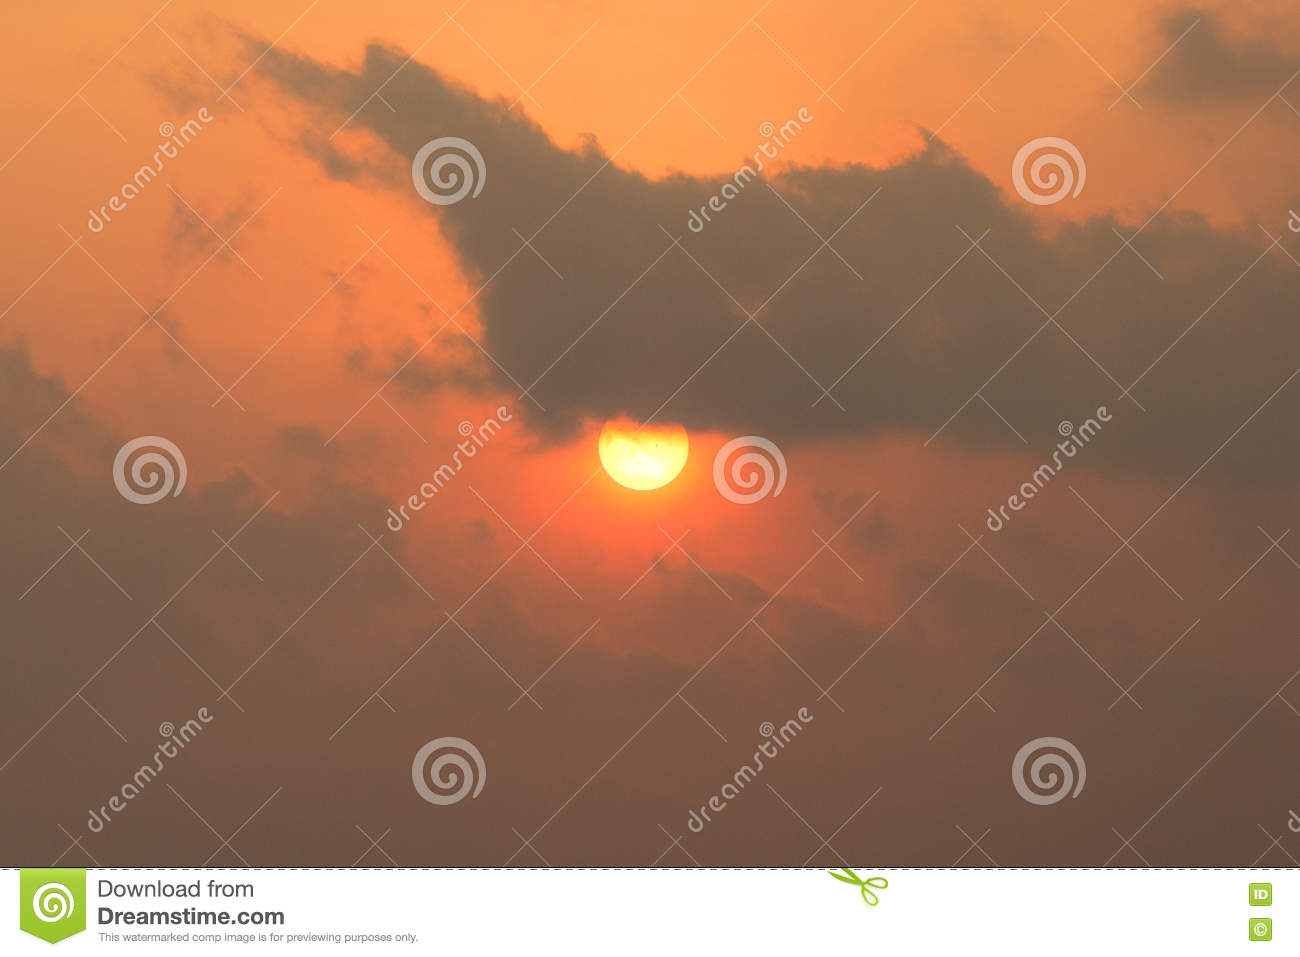 Background of rising sun behind cloudy.